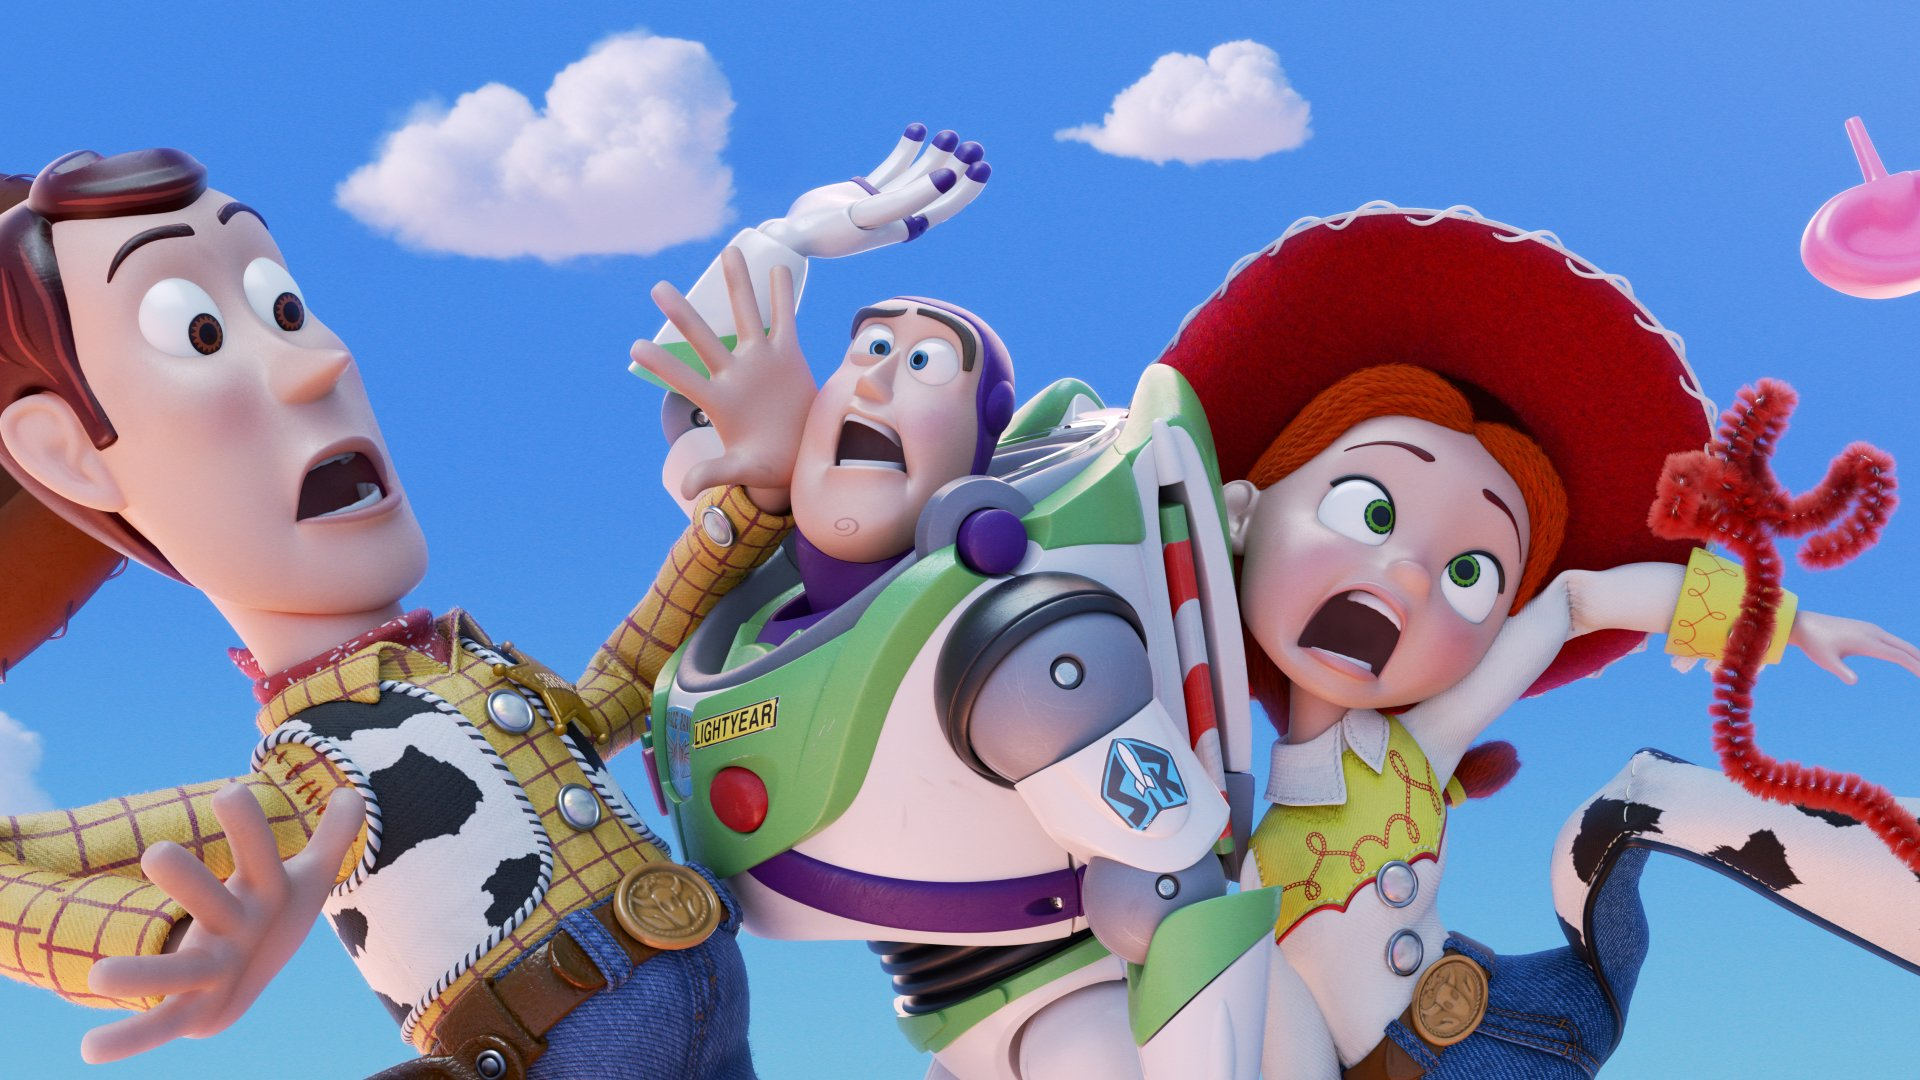 Toy story 4 hd wallpaper background image 1920x1080 - Toy story wallpaper ...